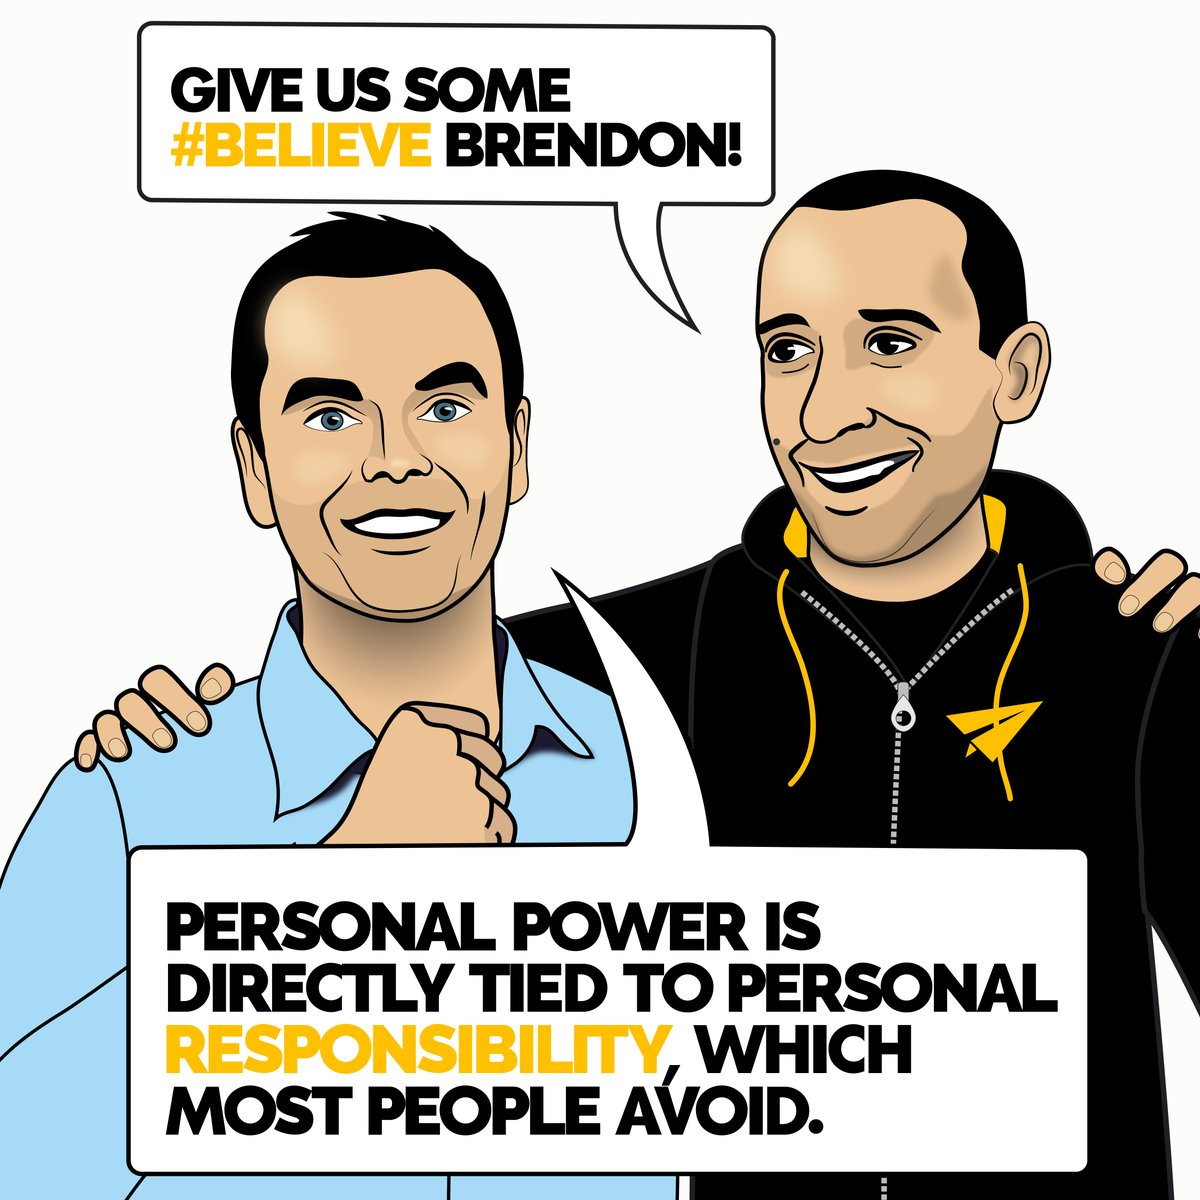 Personal power is directly tied to personal responsibility, which most people avoid. @BrendonBurchard Burchard | Do you AGREE or DISAGREE? #Believe . #boundaries #emotionalintelligence #mindset